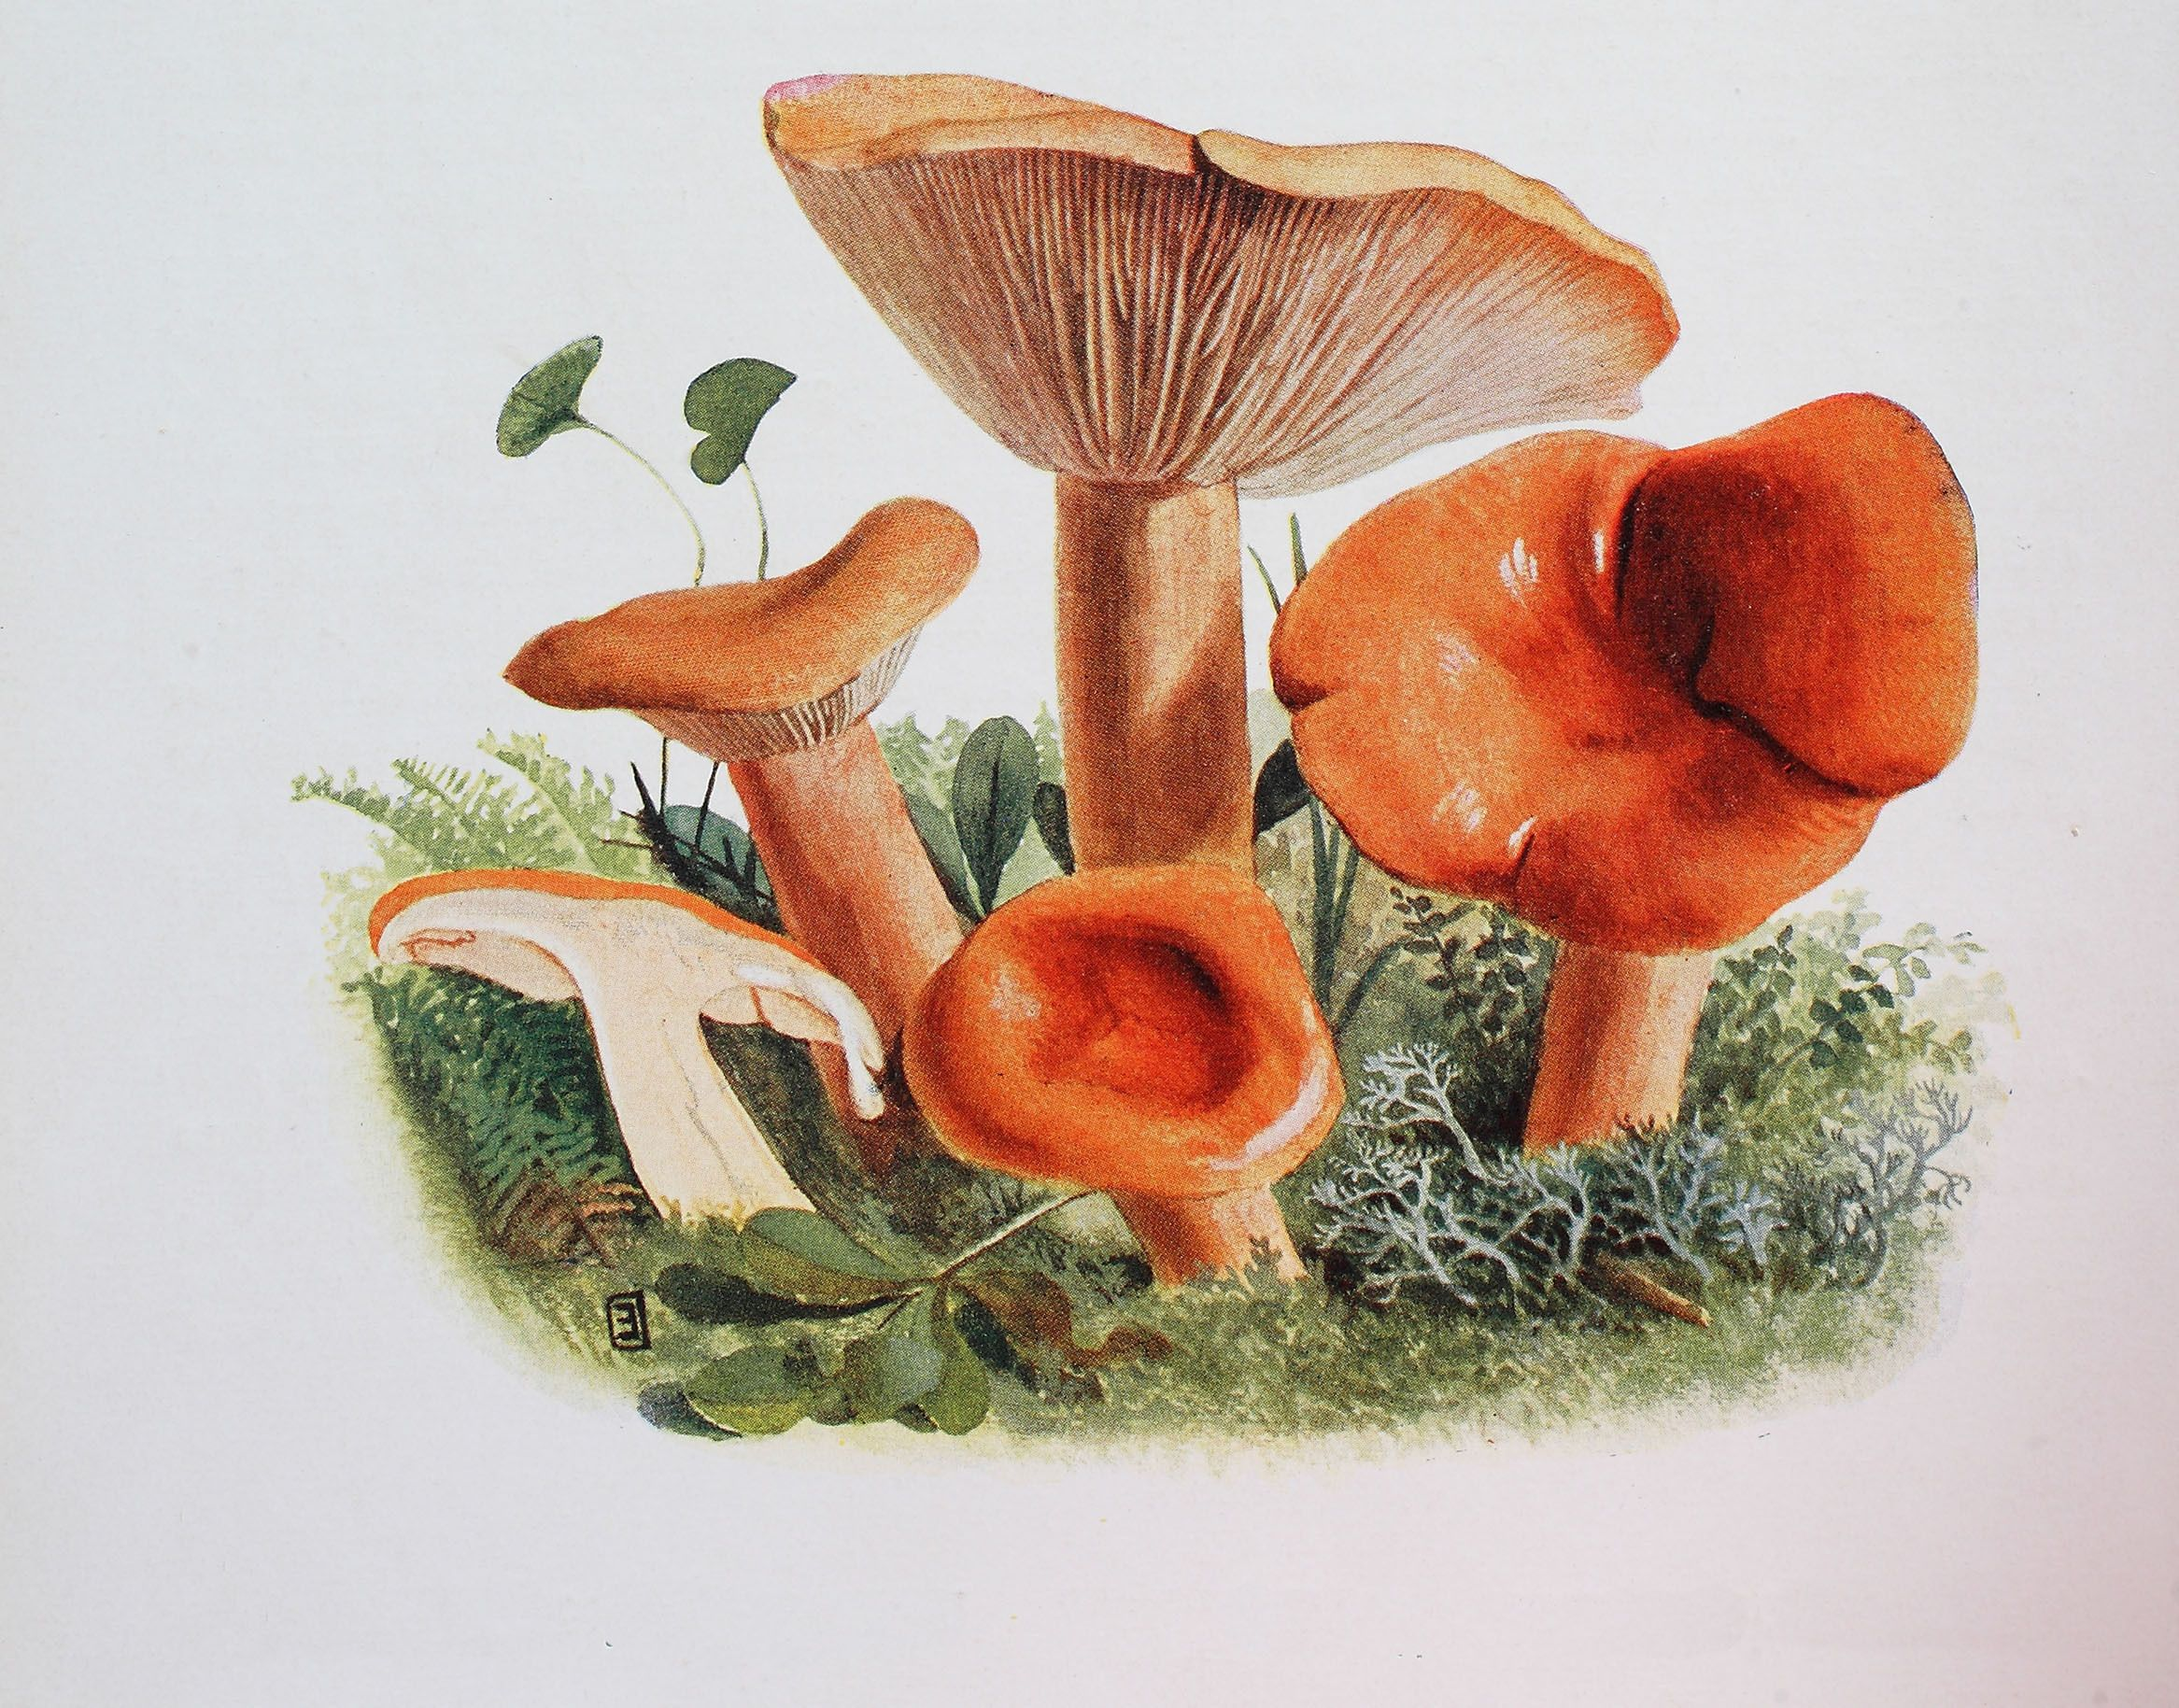 It's Official: Mushrooms Are Design's Hottest Trend